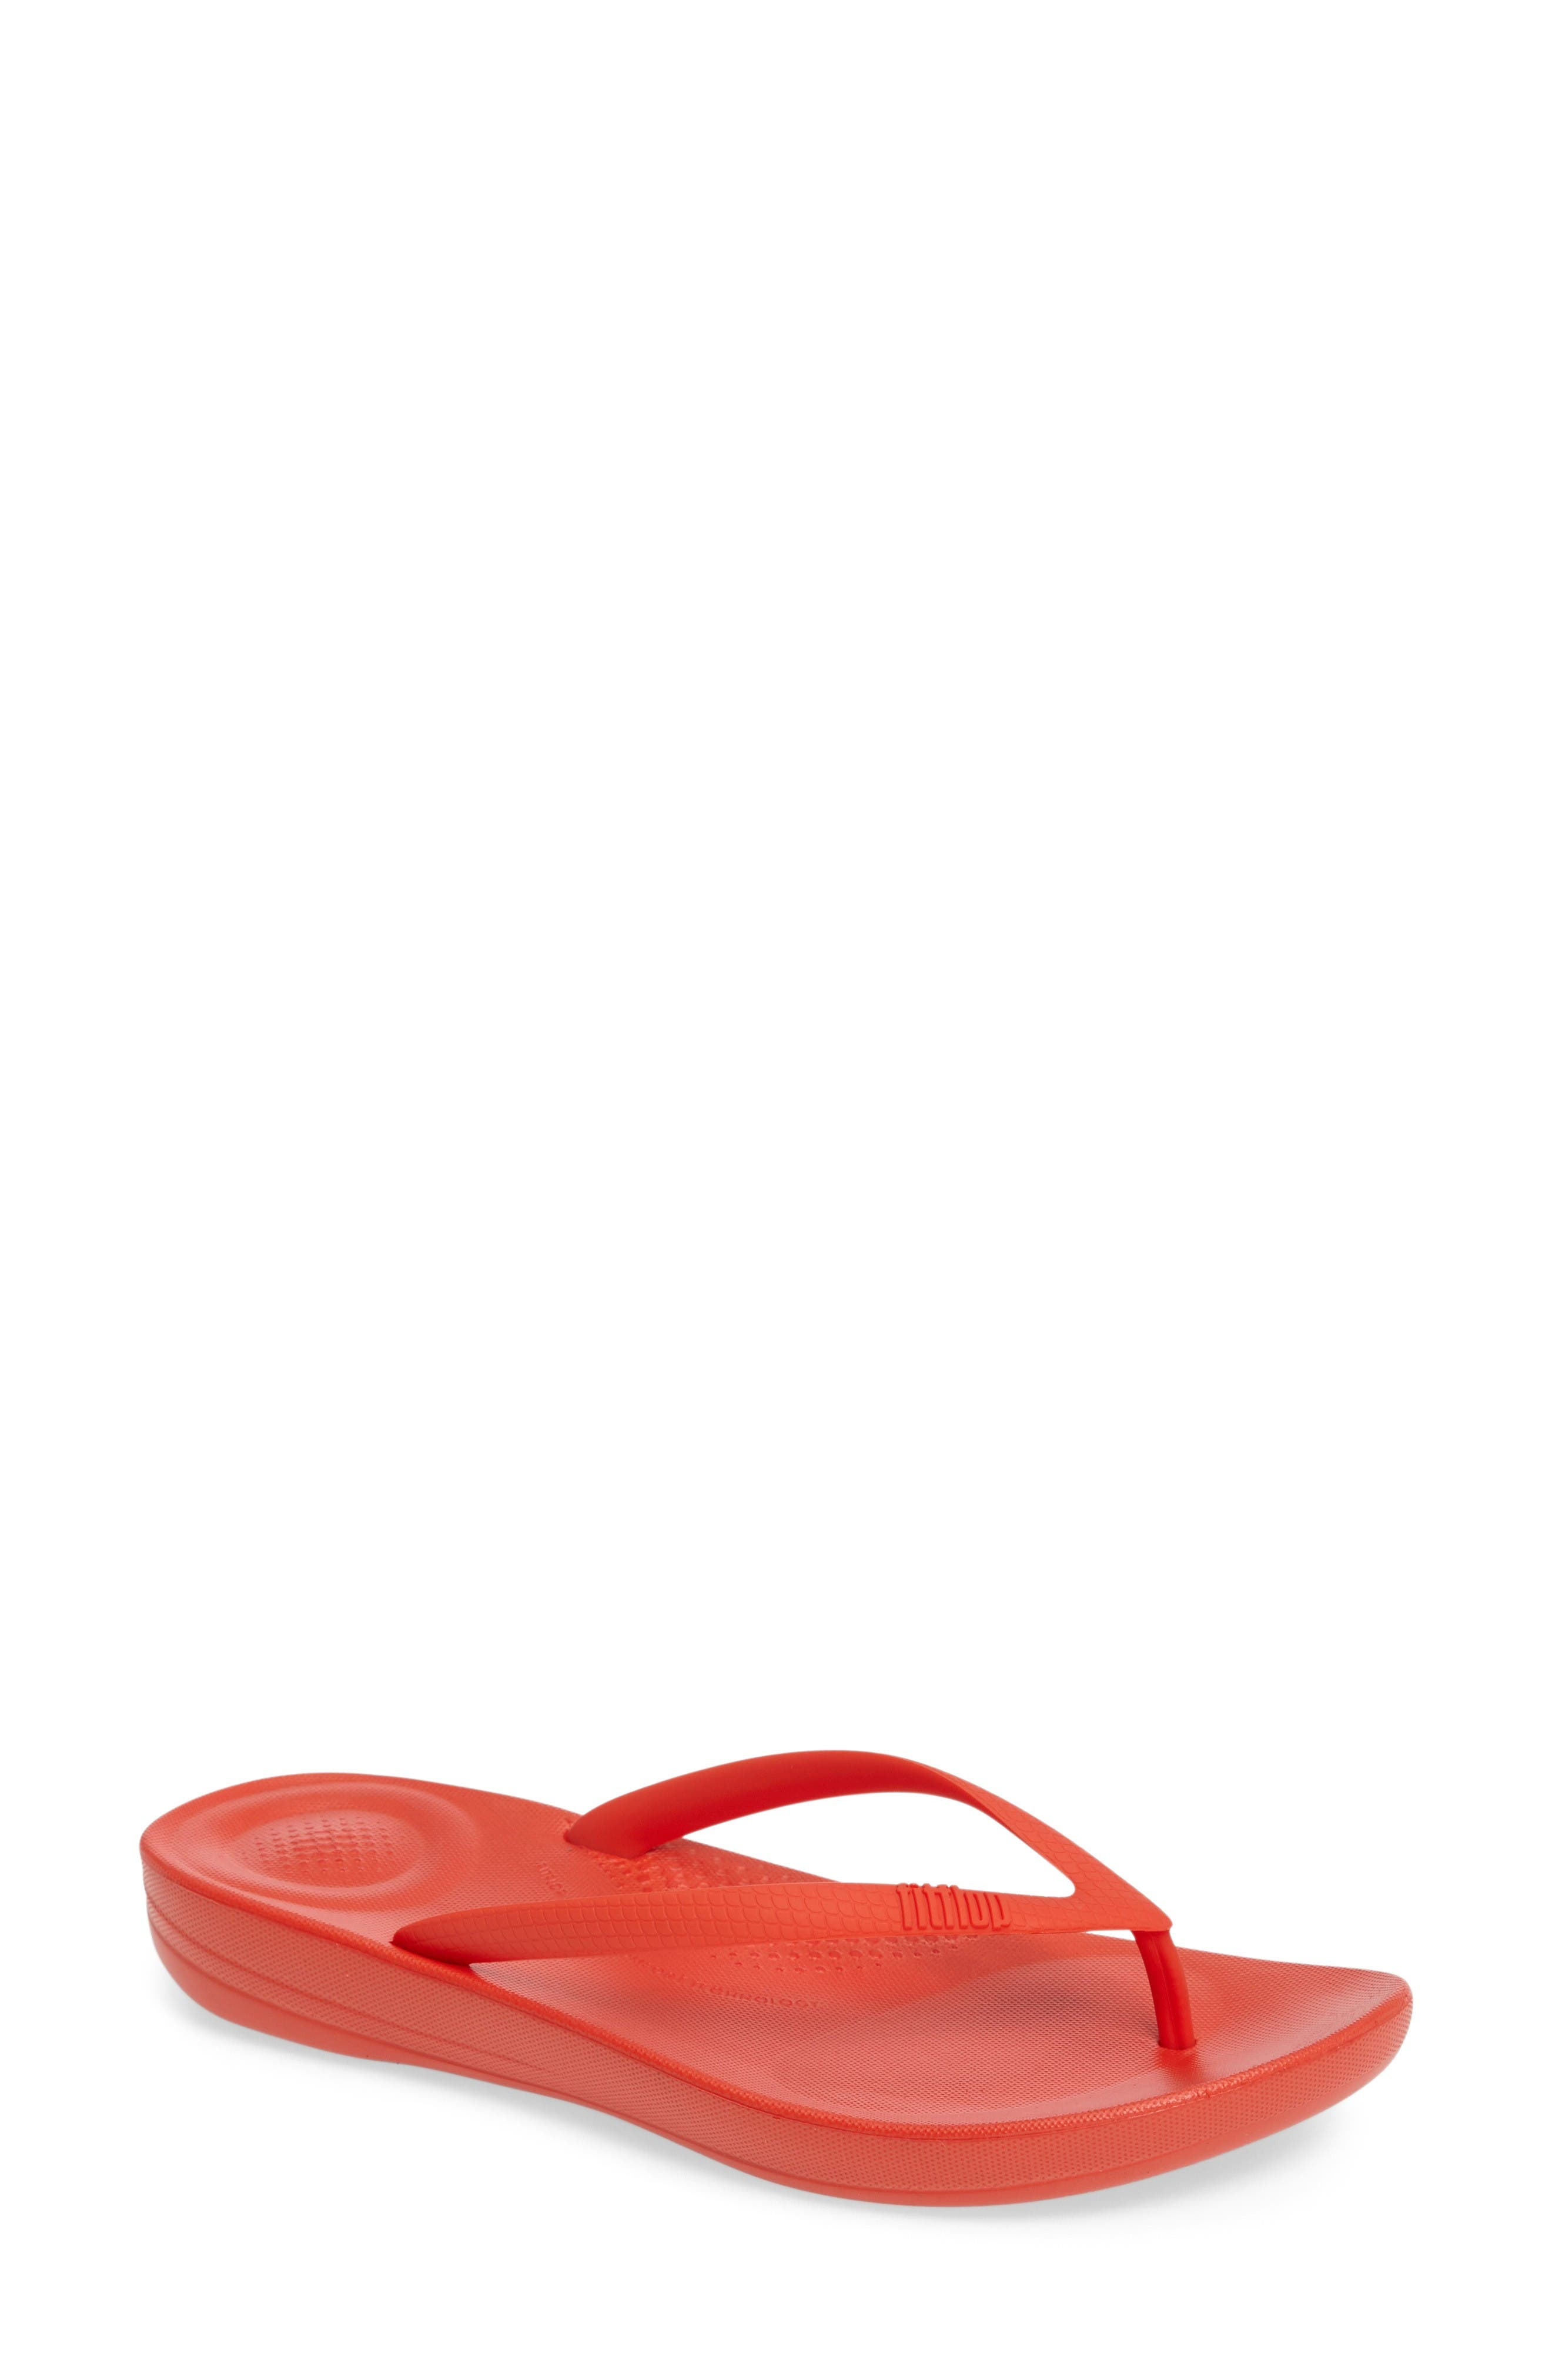 FitFlop iQushion Flip Flop (Women)